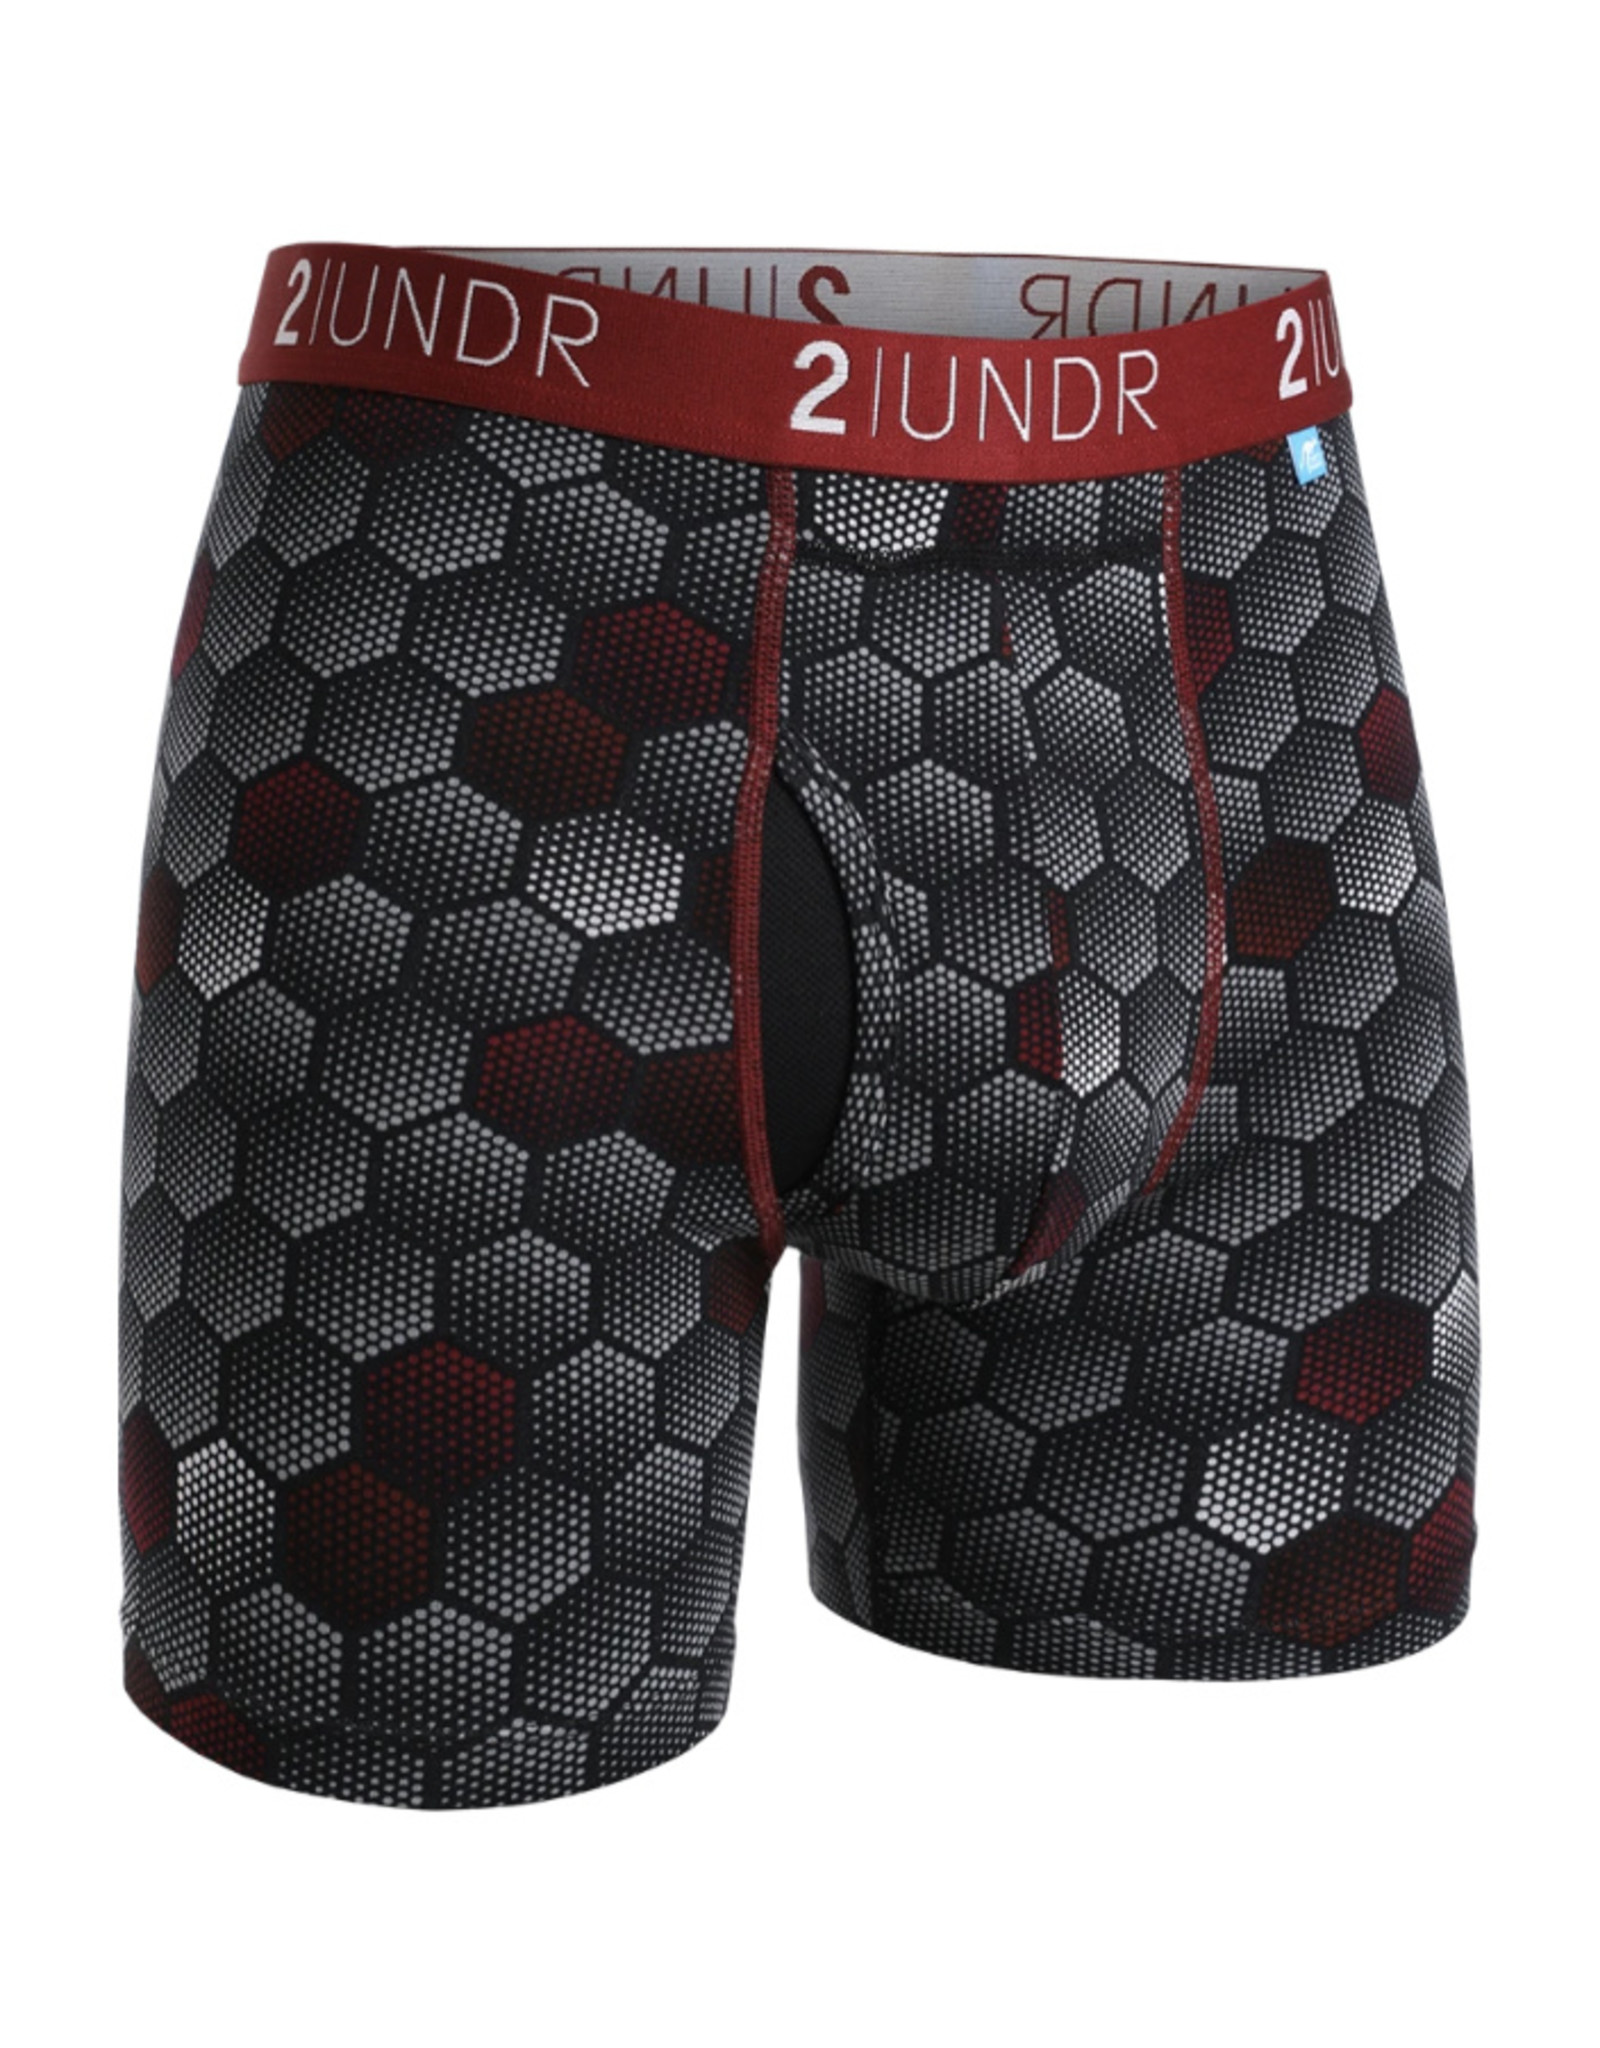 "2UNDR 2UNDR SWING BRIEF 6""2U01BB.132"